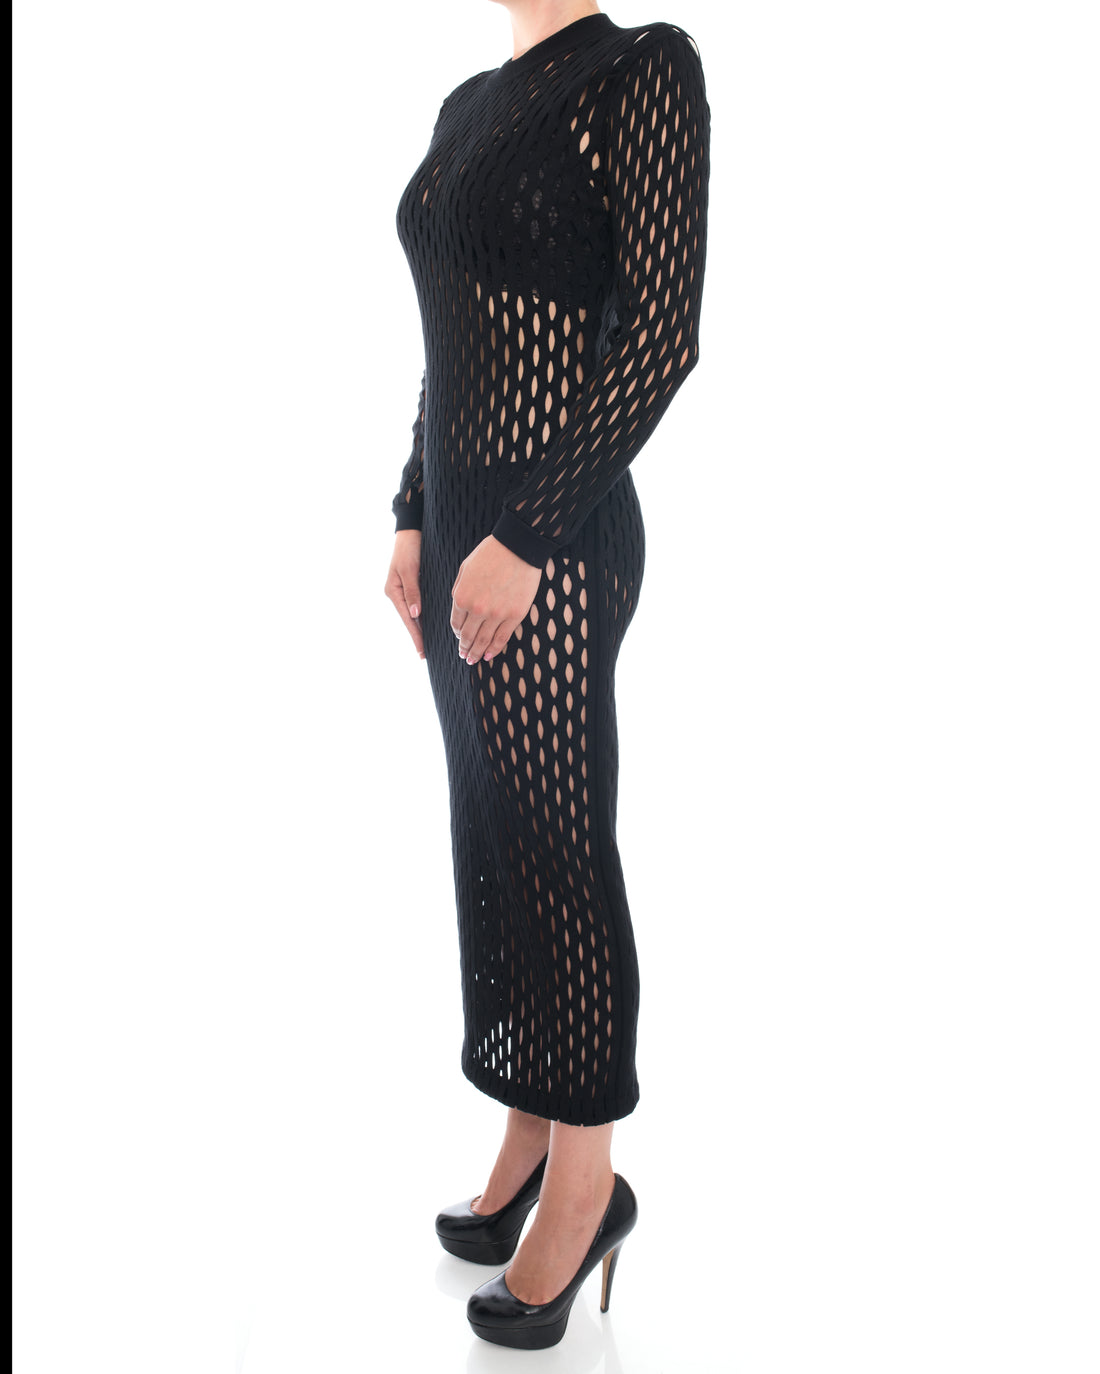 Balmain Black Sheer Stretch Mesh Long Tube Dress - 10